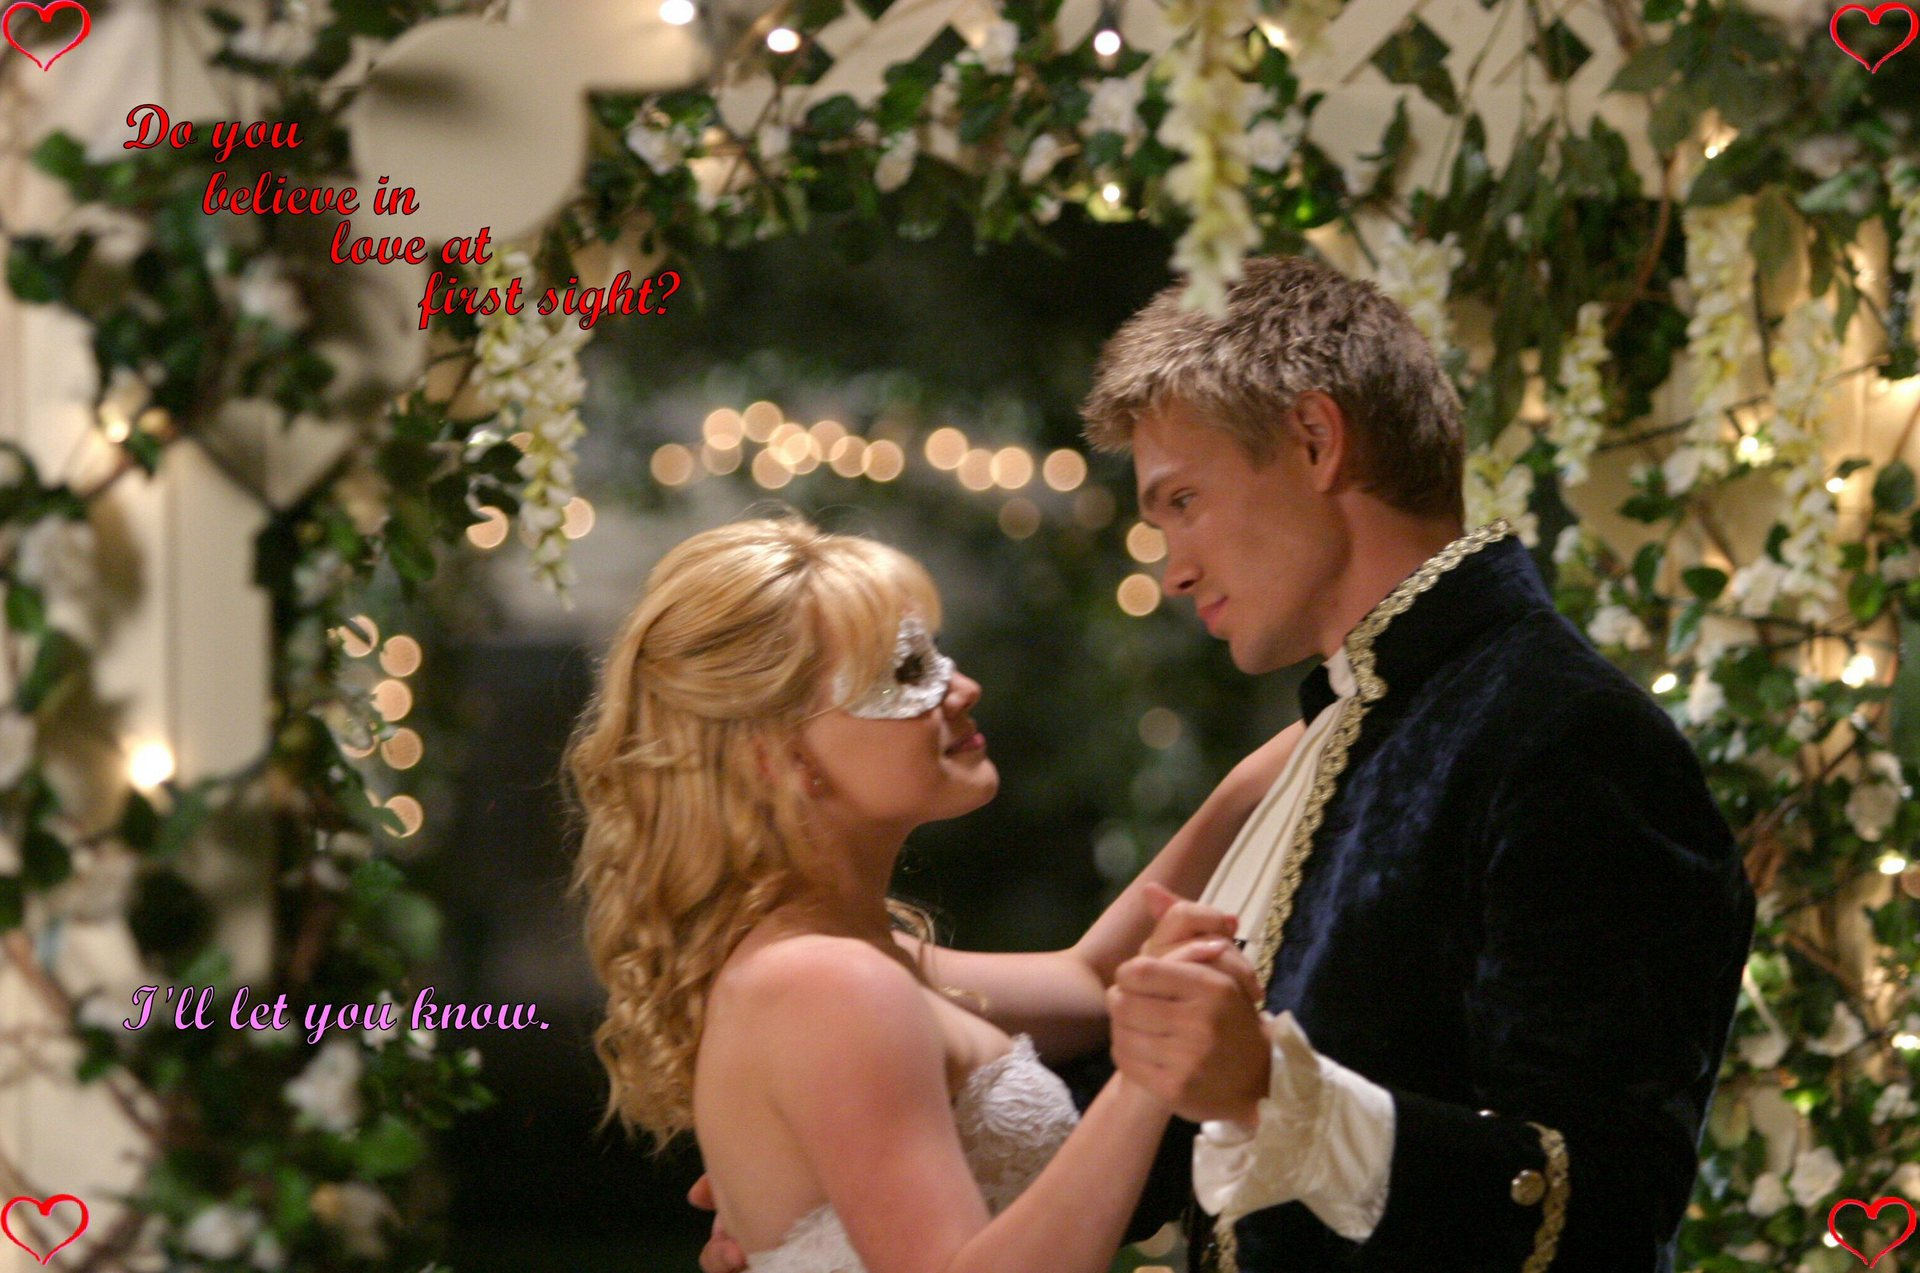 https://i0.wp.com/images1.fanpop.com/images/image_uploads/Austin-and-Sam-a-cinderella-story-1049005_1920_1273.jpg